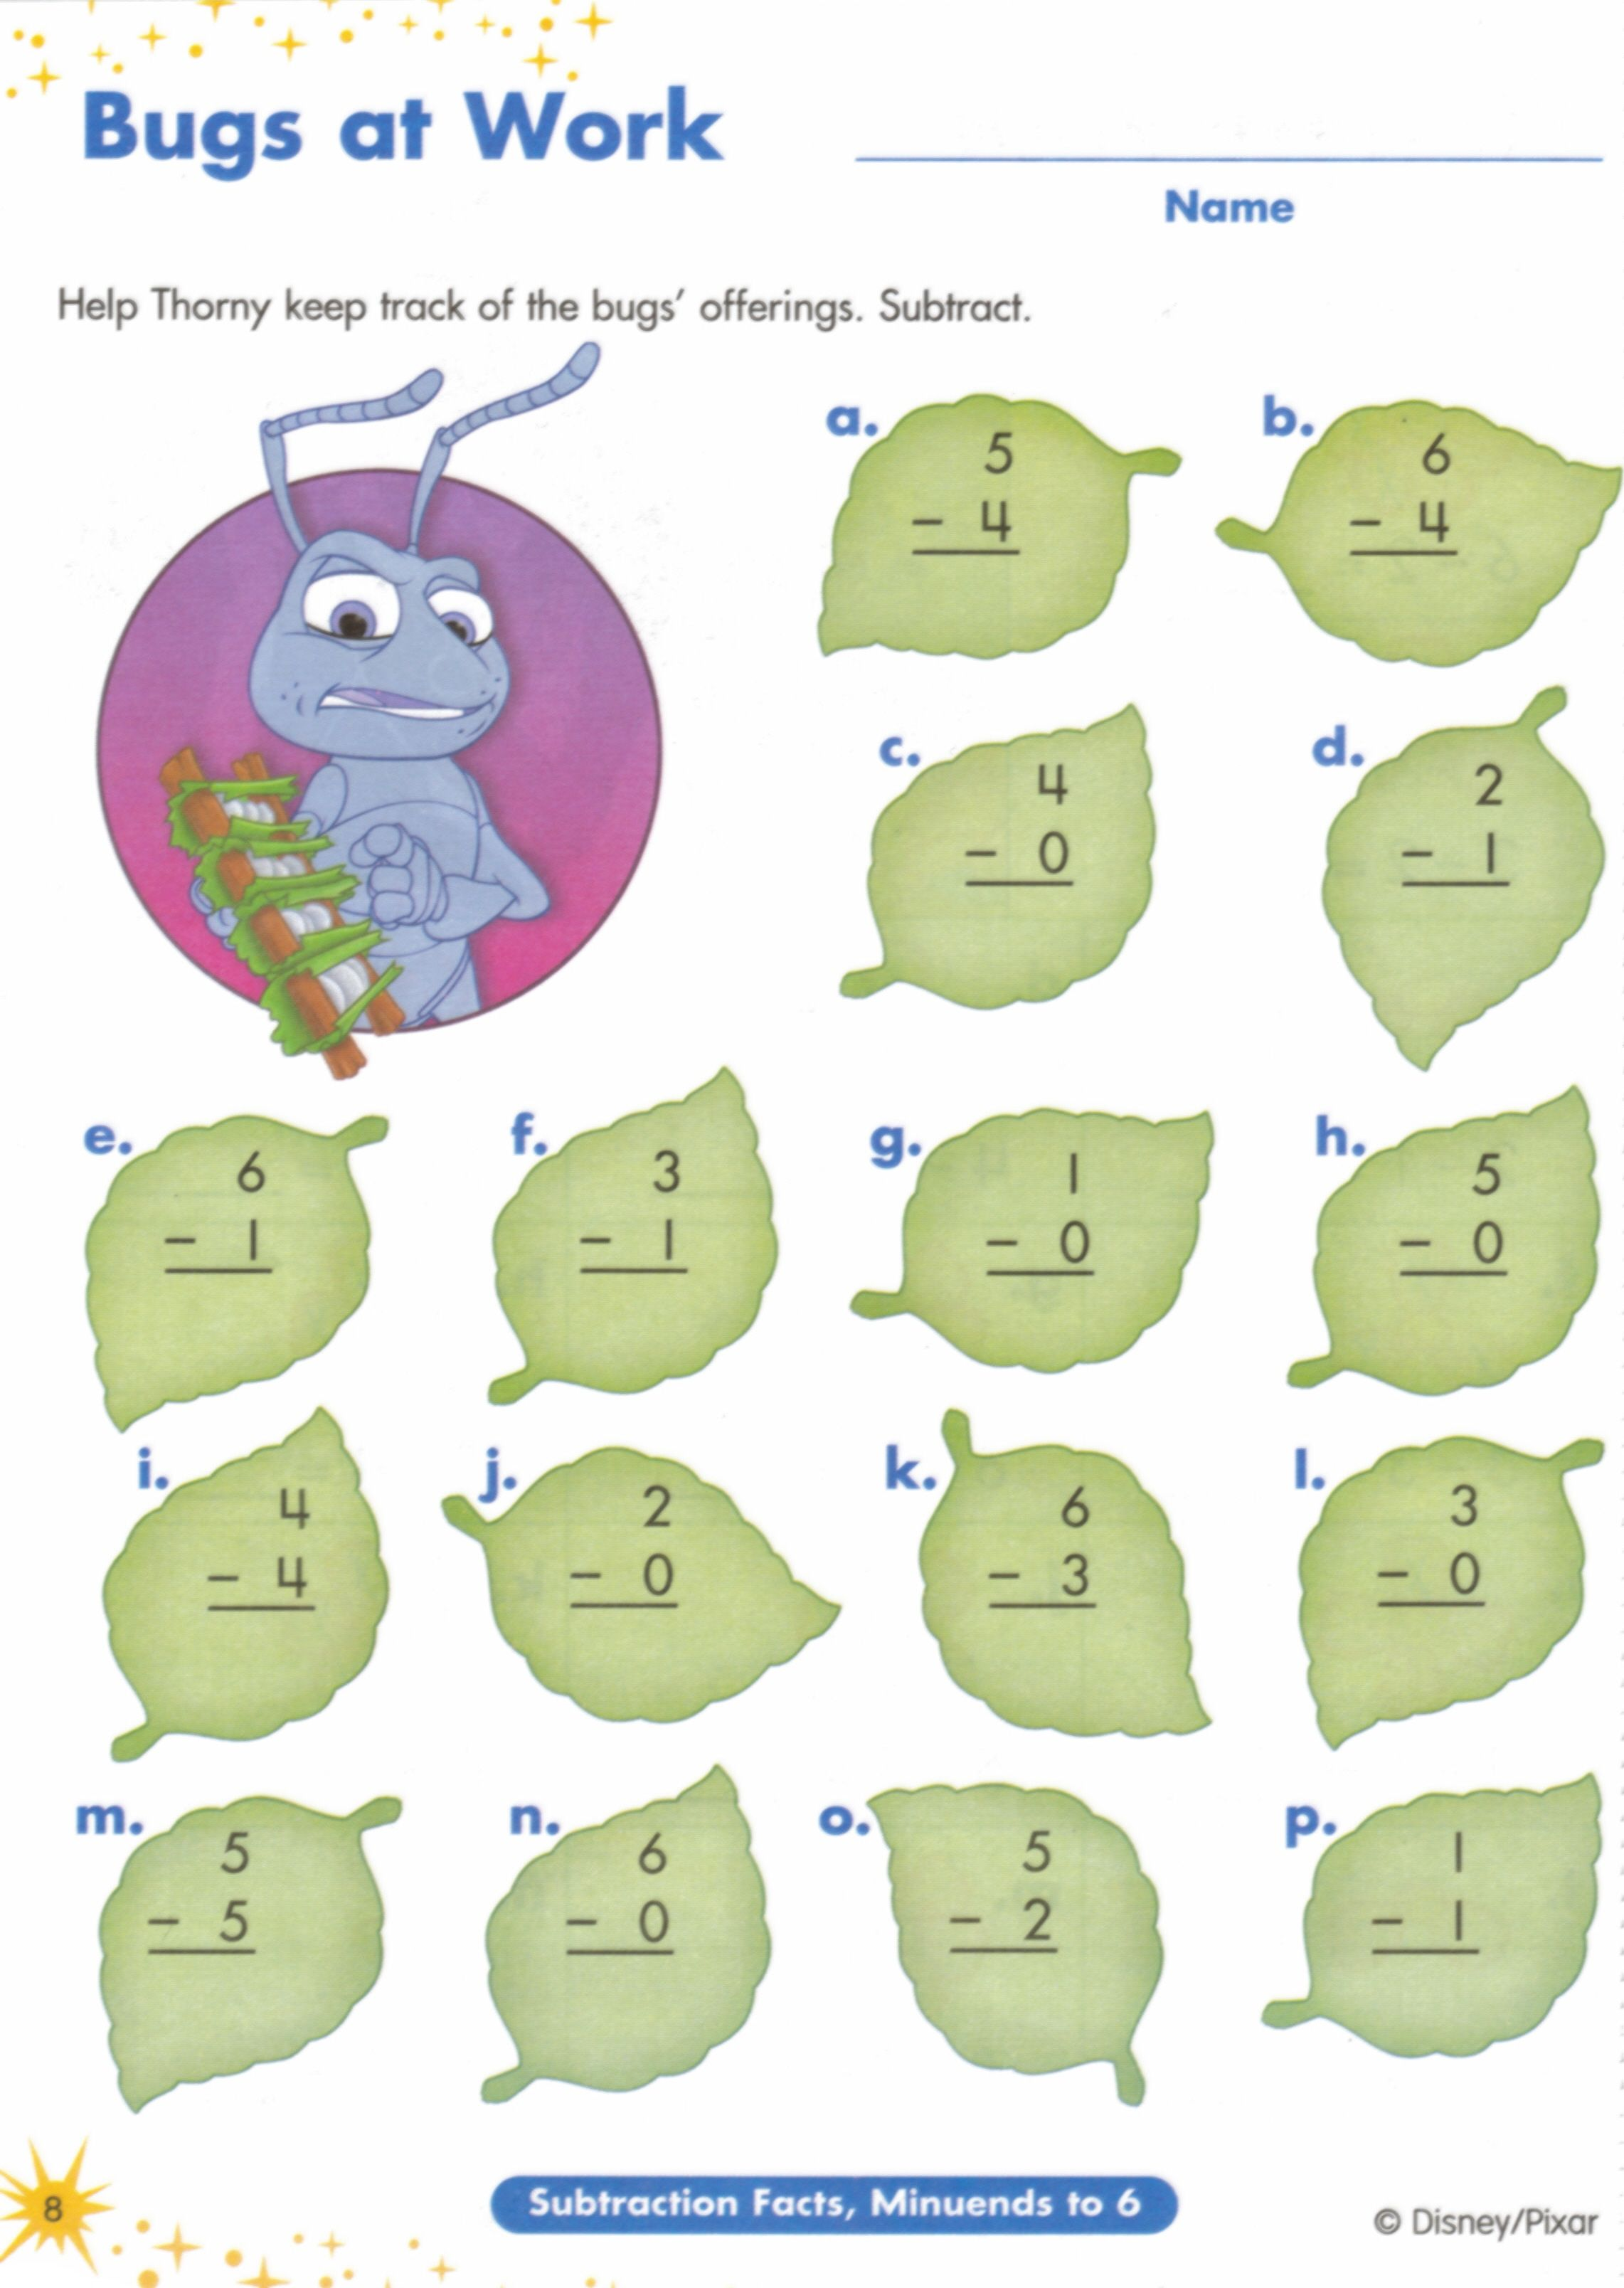 Weirdmailus  Winsome  Images About Worksheets On Pinterest  Fun Facts For Kids  With Lovable  Images About Worksheets On Pinterest  Fun Facts For Kids Earth Day Worksheets And Jungles With Amusing Algebra  Review Worksheet Also Sight Word Printable Worksheets In Addition Pre School Worksheet And Bill Budget Worksheet As Well As Inscribed Angles And Arcs Worksheet Additionally Aplusmath Worksheet From Pinterestcom With Weirdmailus  Lovable  Images About Worksheets On Pinterest  Fun Facts For Kids  With Amusing  Images About Worksheets On Pinterest  Fun Facts For Kids Earth Day Worksheets And Jungles And Winsome Algebra  Review Worksheet Also Sight Word Printable Worksheets In Addition Pre School Worksheet From Pinterestcom